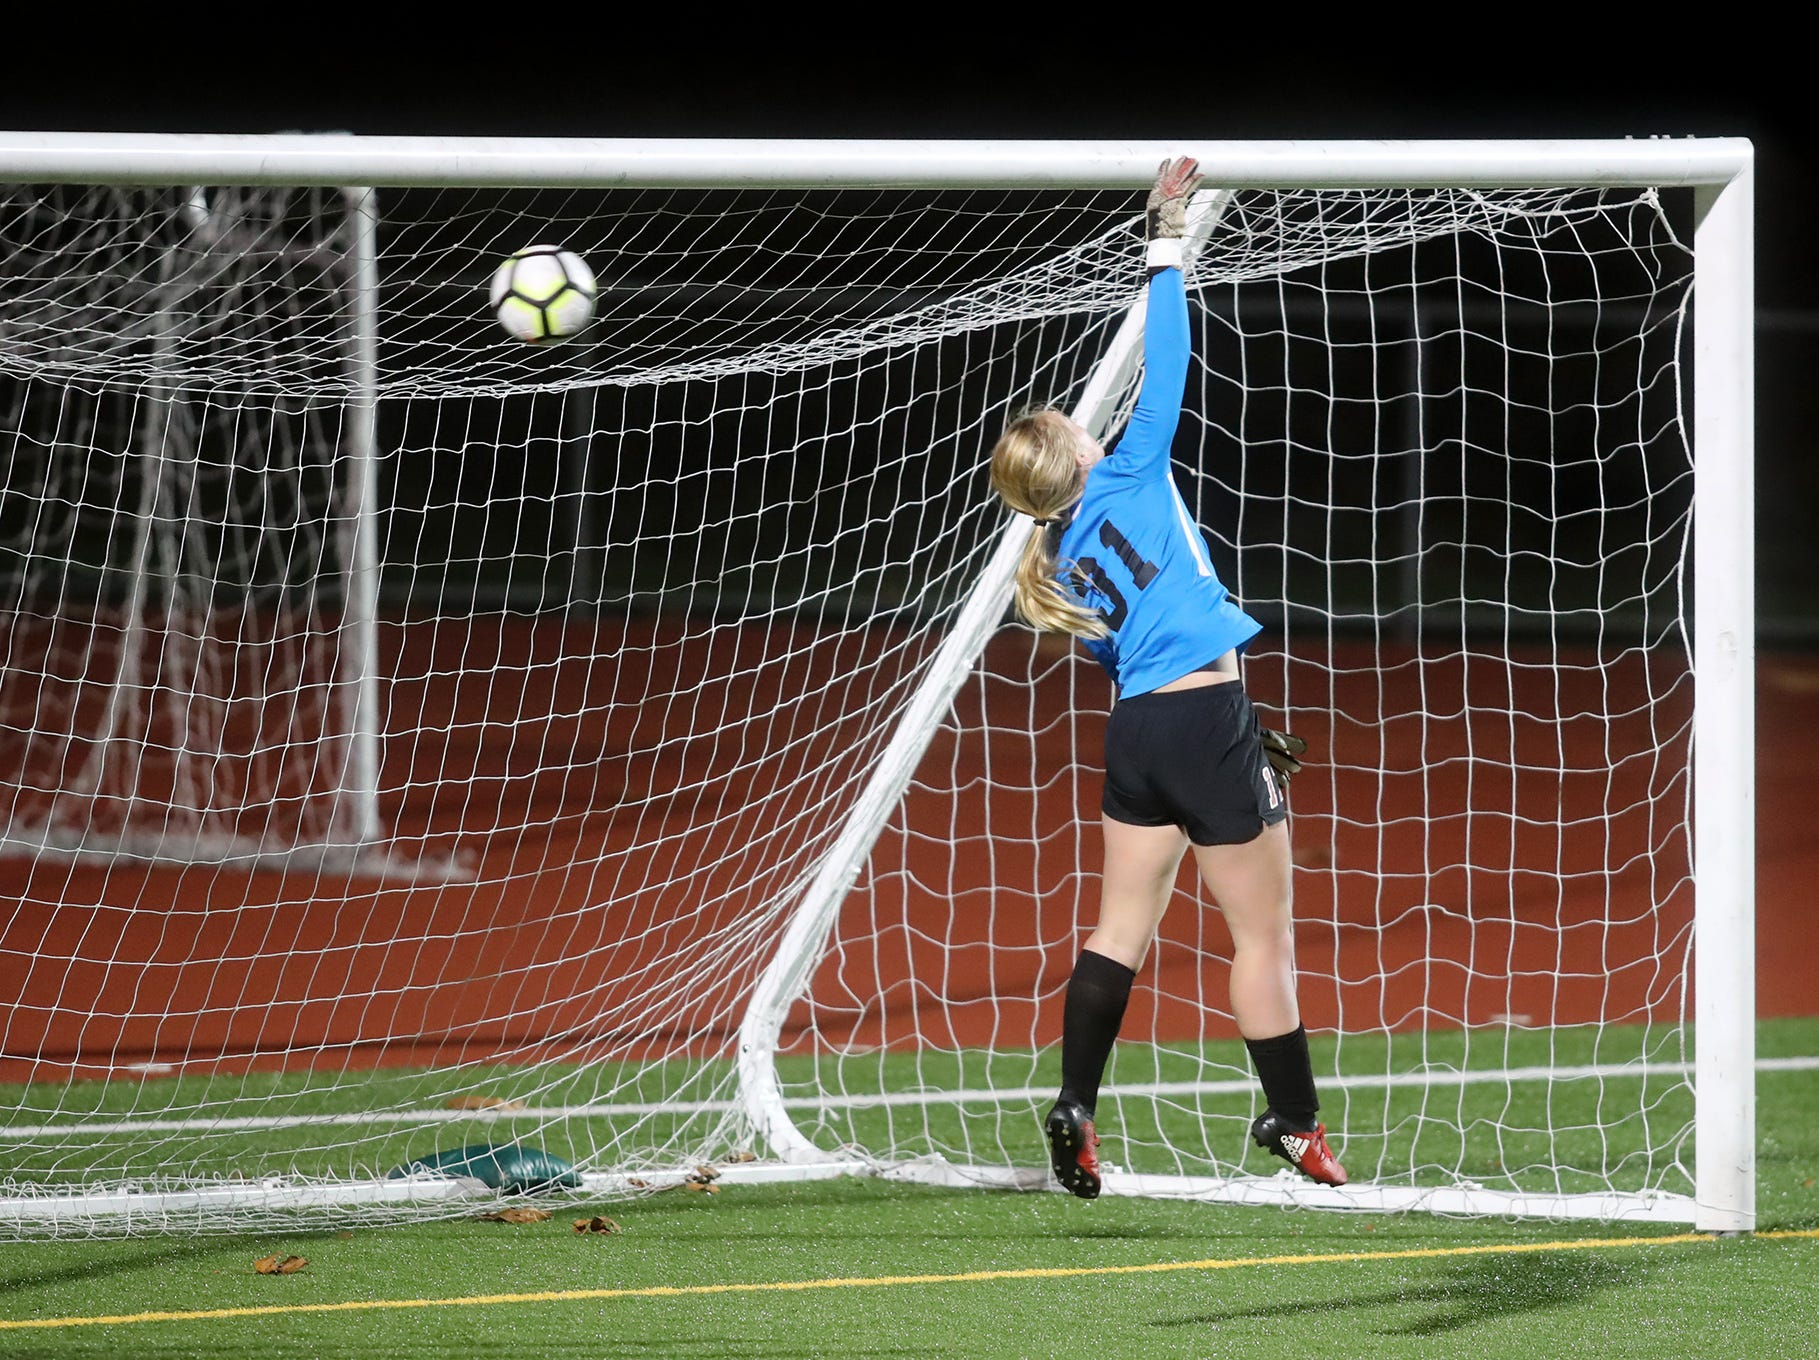 Klahowya defeated Tenino 7-0 in a state soccer game Tuesday, November 6, 2018 at Silverdale Stadium. The kick gets by Tenino goal keeper Maria Collins.